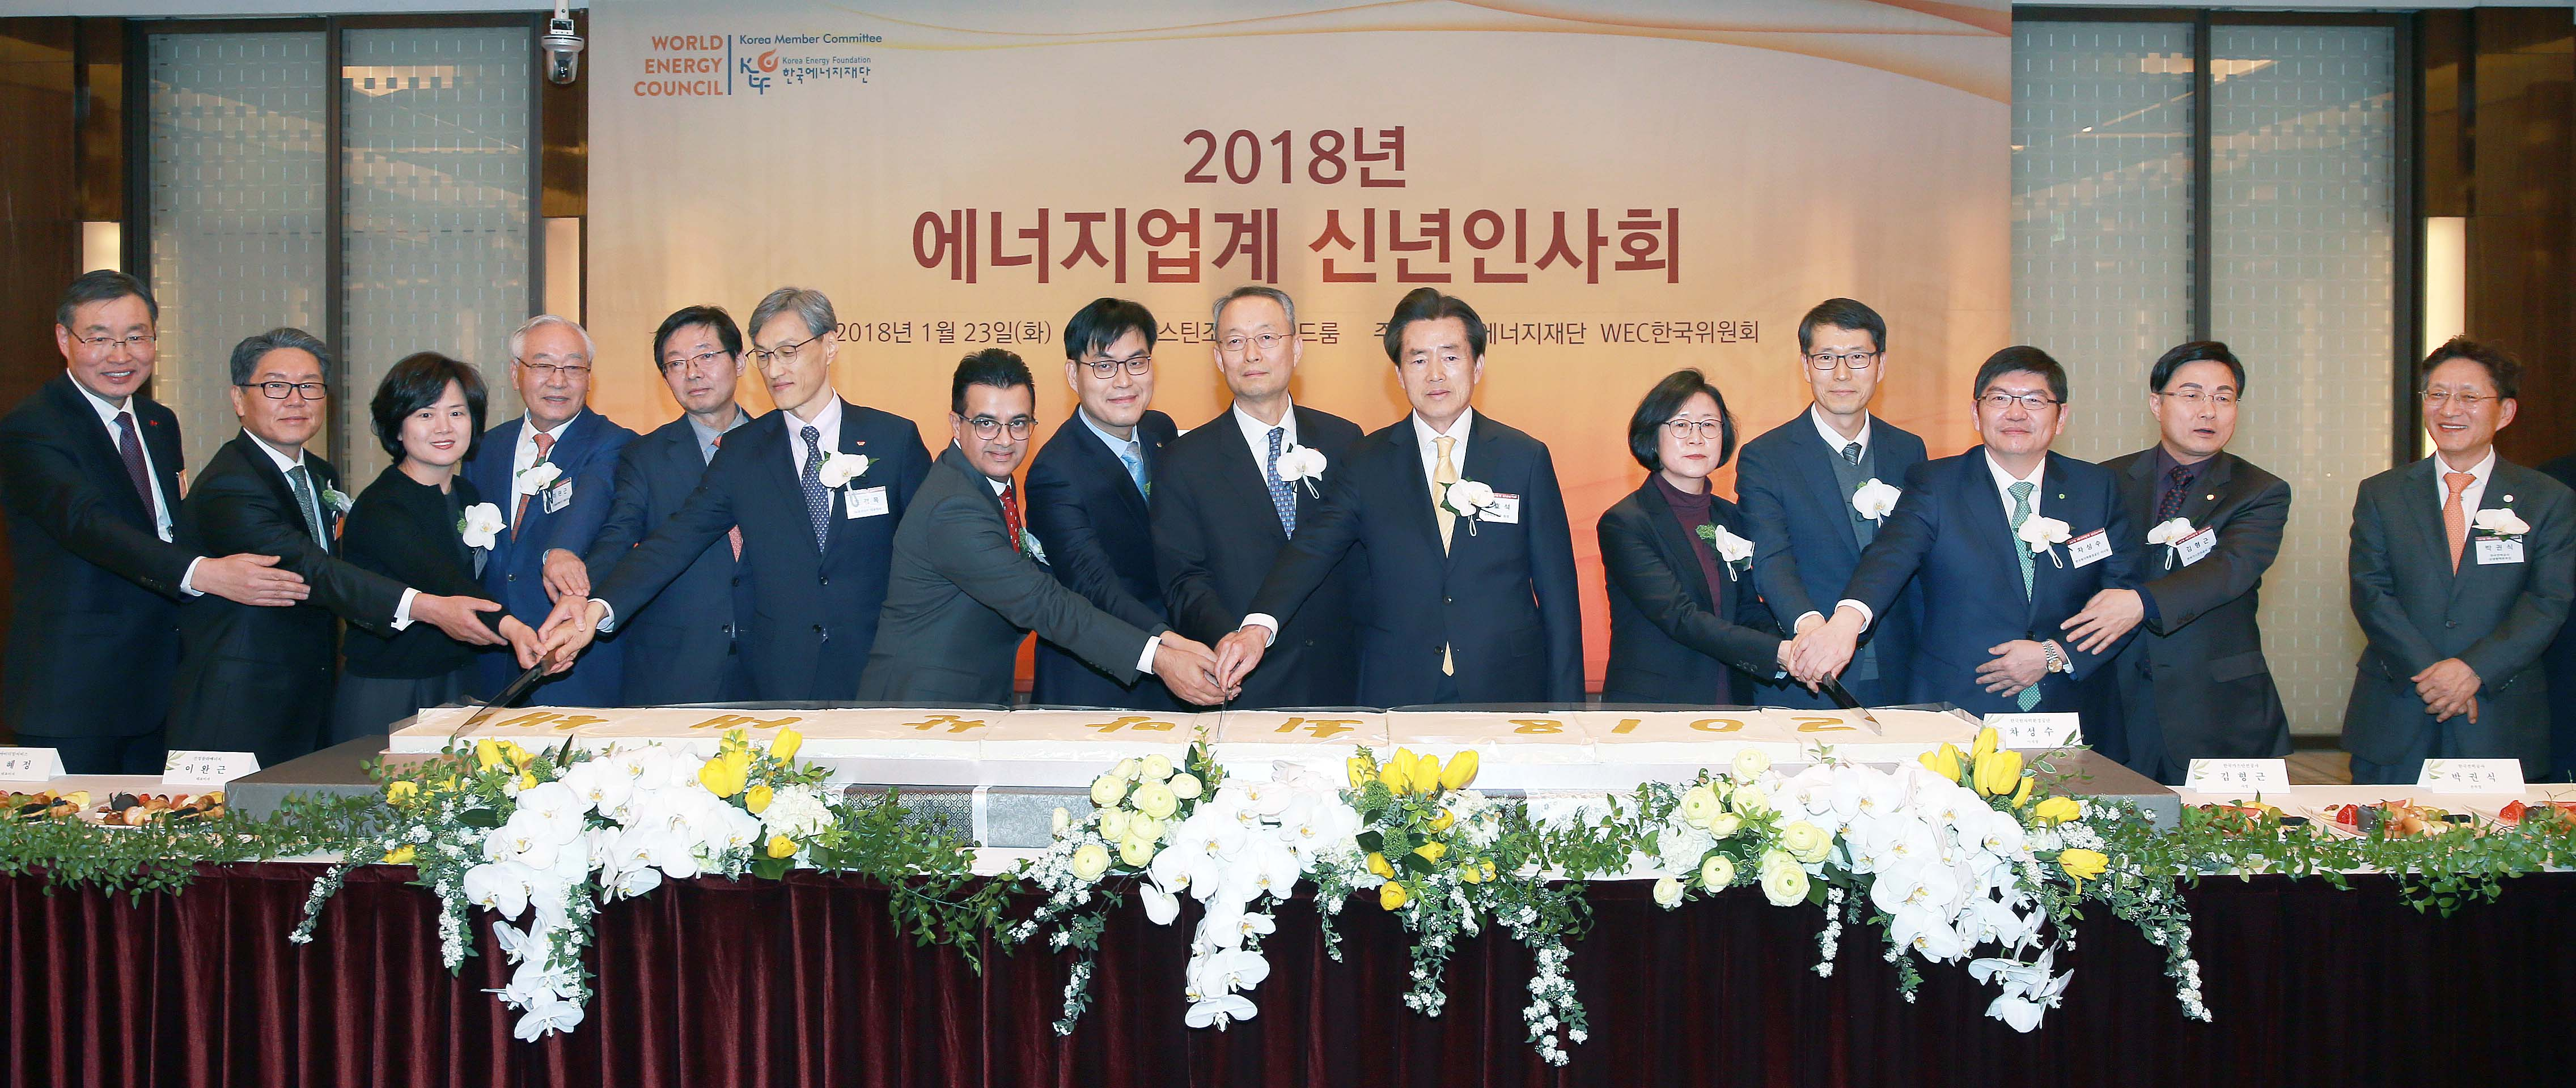 Minister Paik meets with energy industry leaders